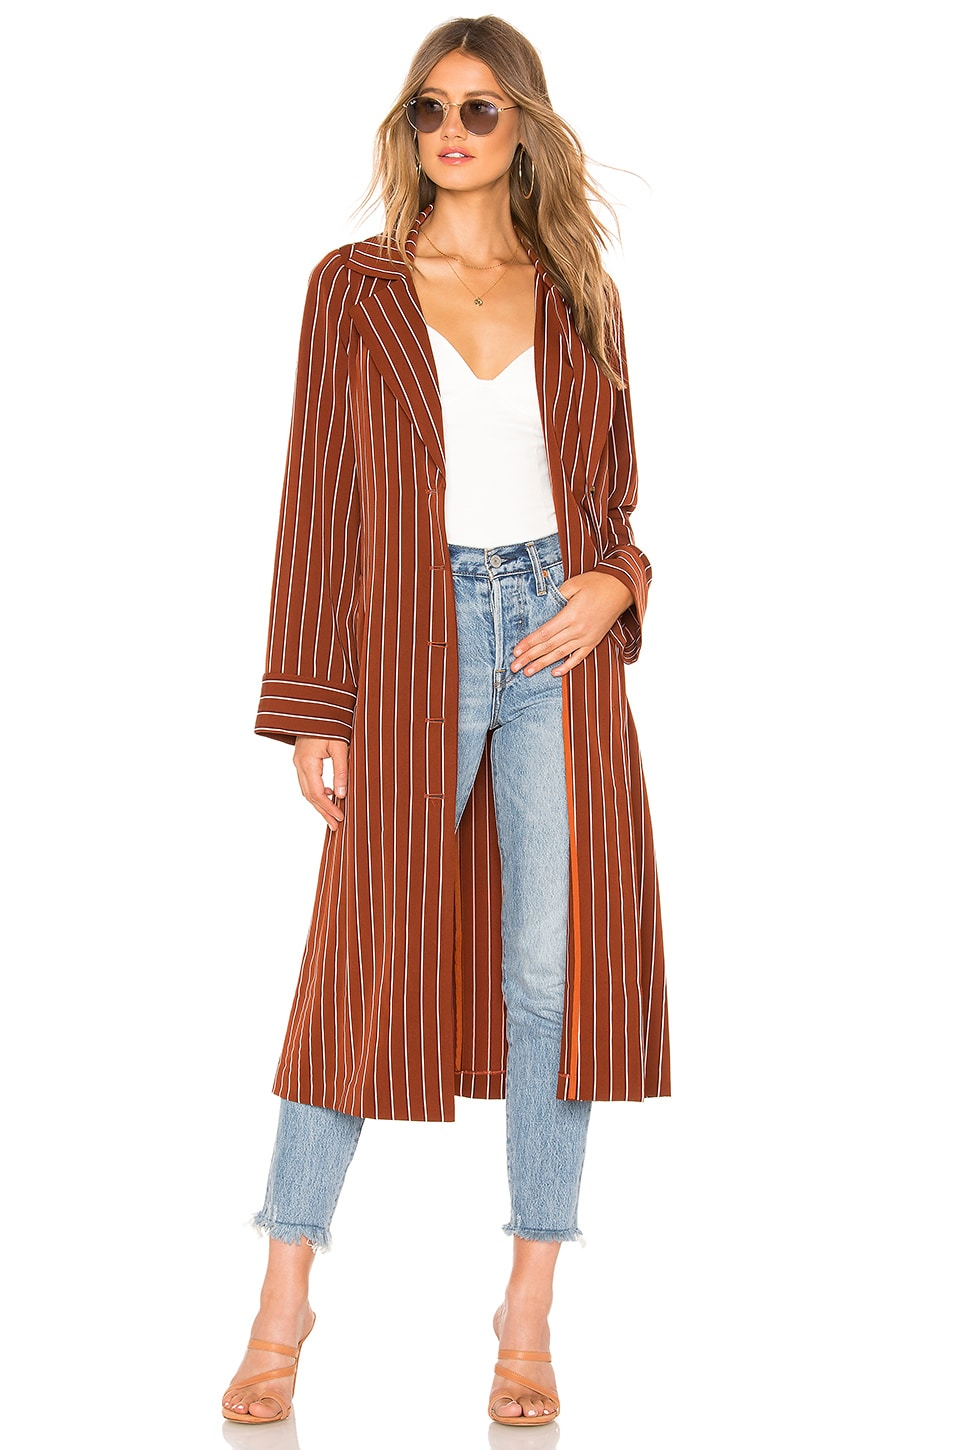 Privacy Please Cassidy Trench in Tan Stripe